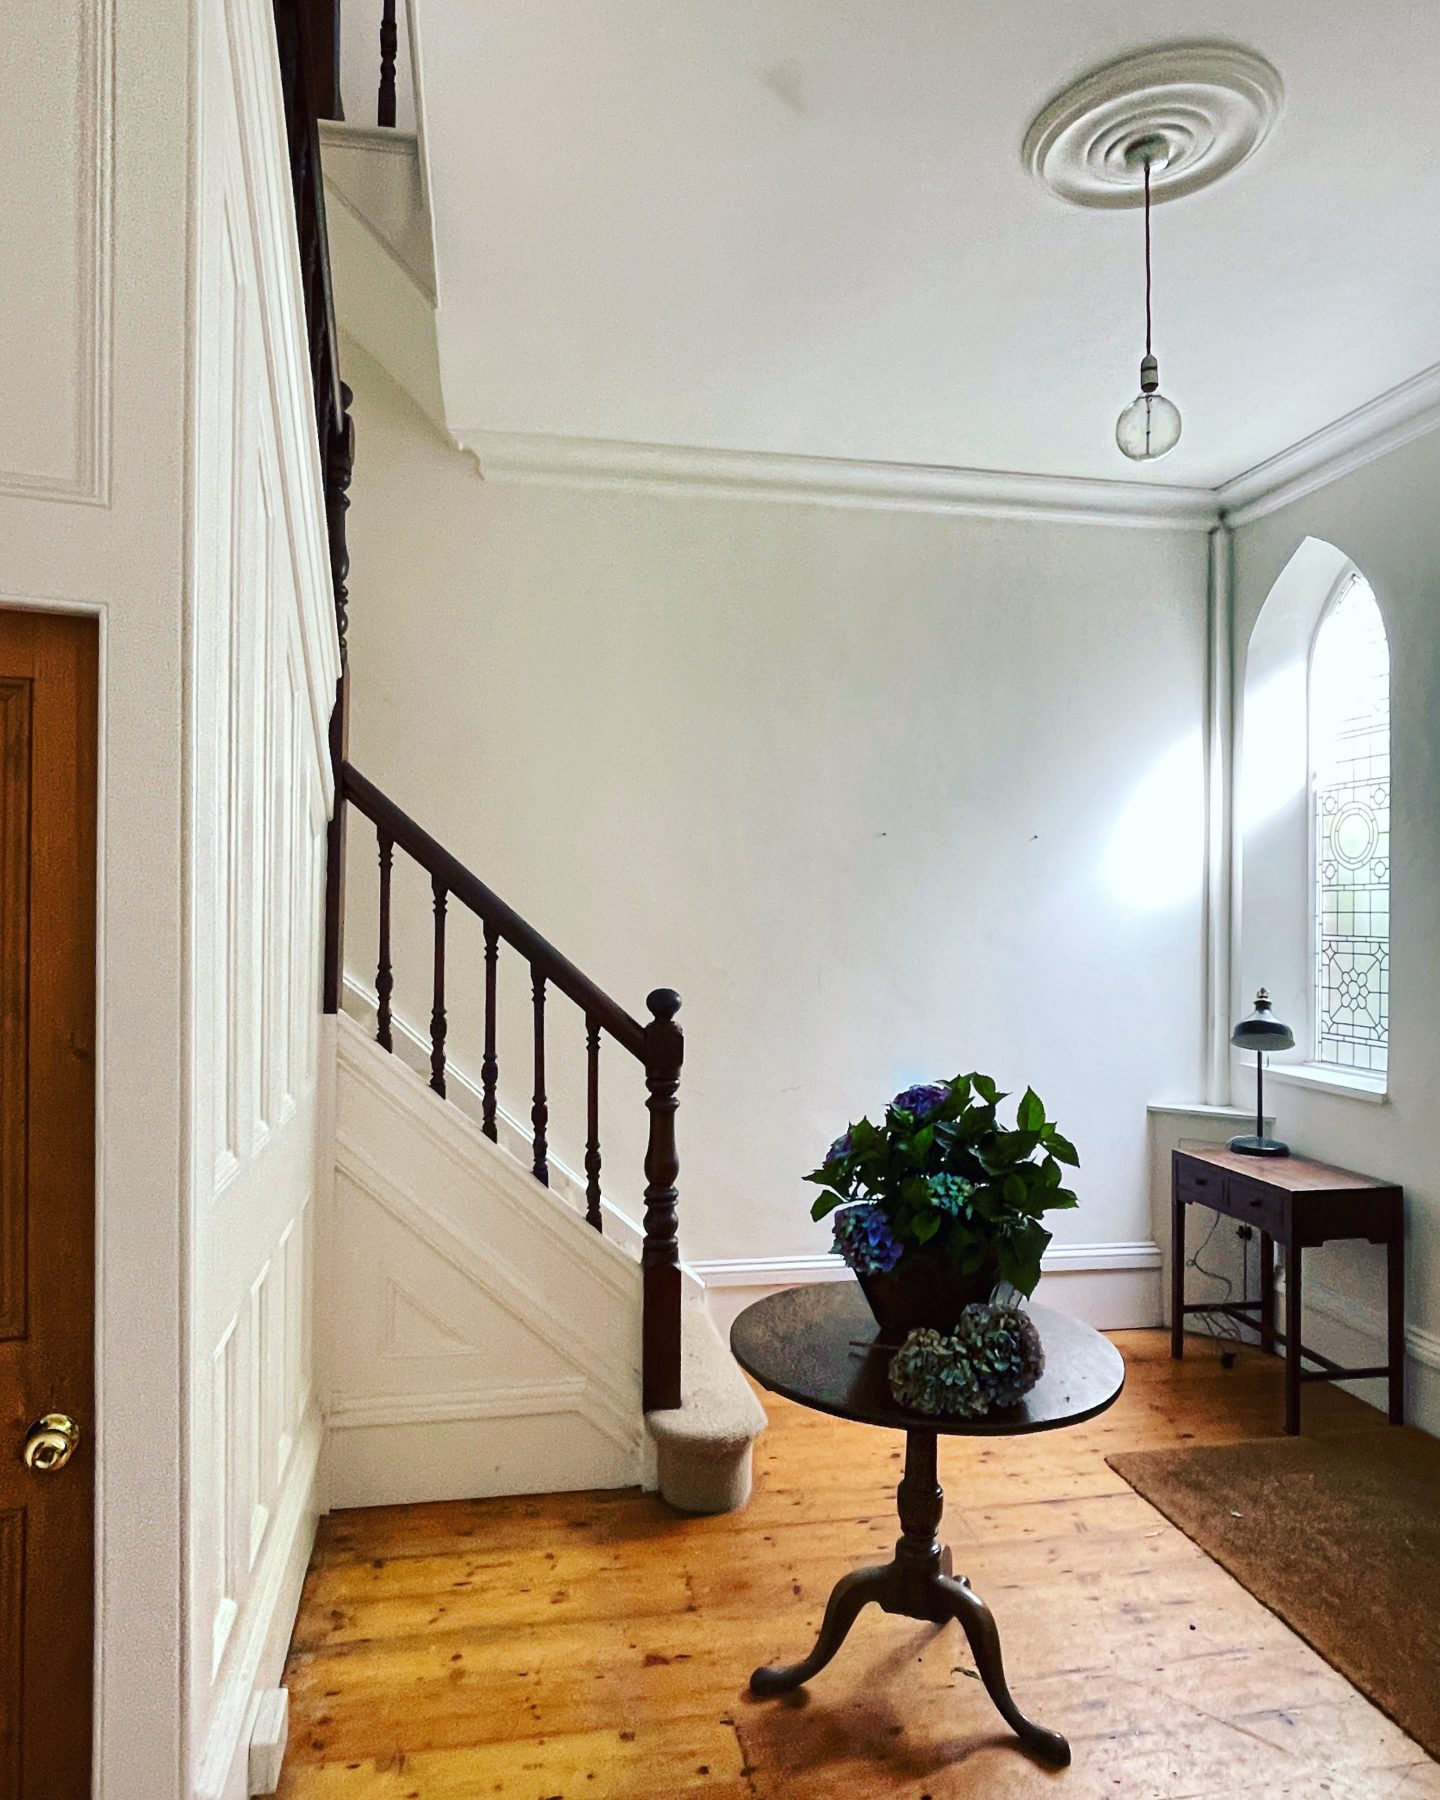 Victorian gothic semi detached house'S hallway. Arched windows